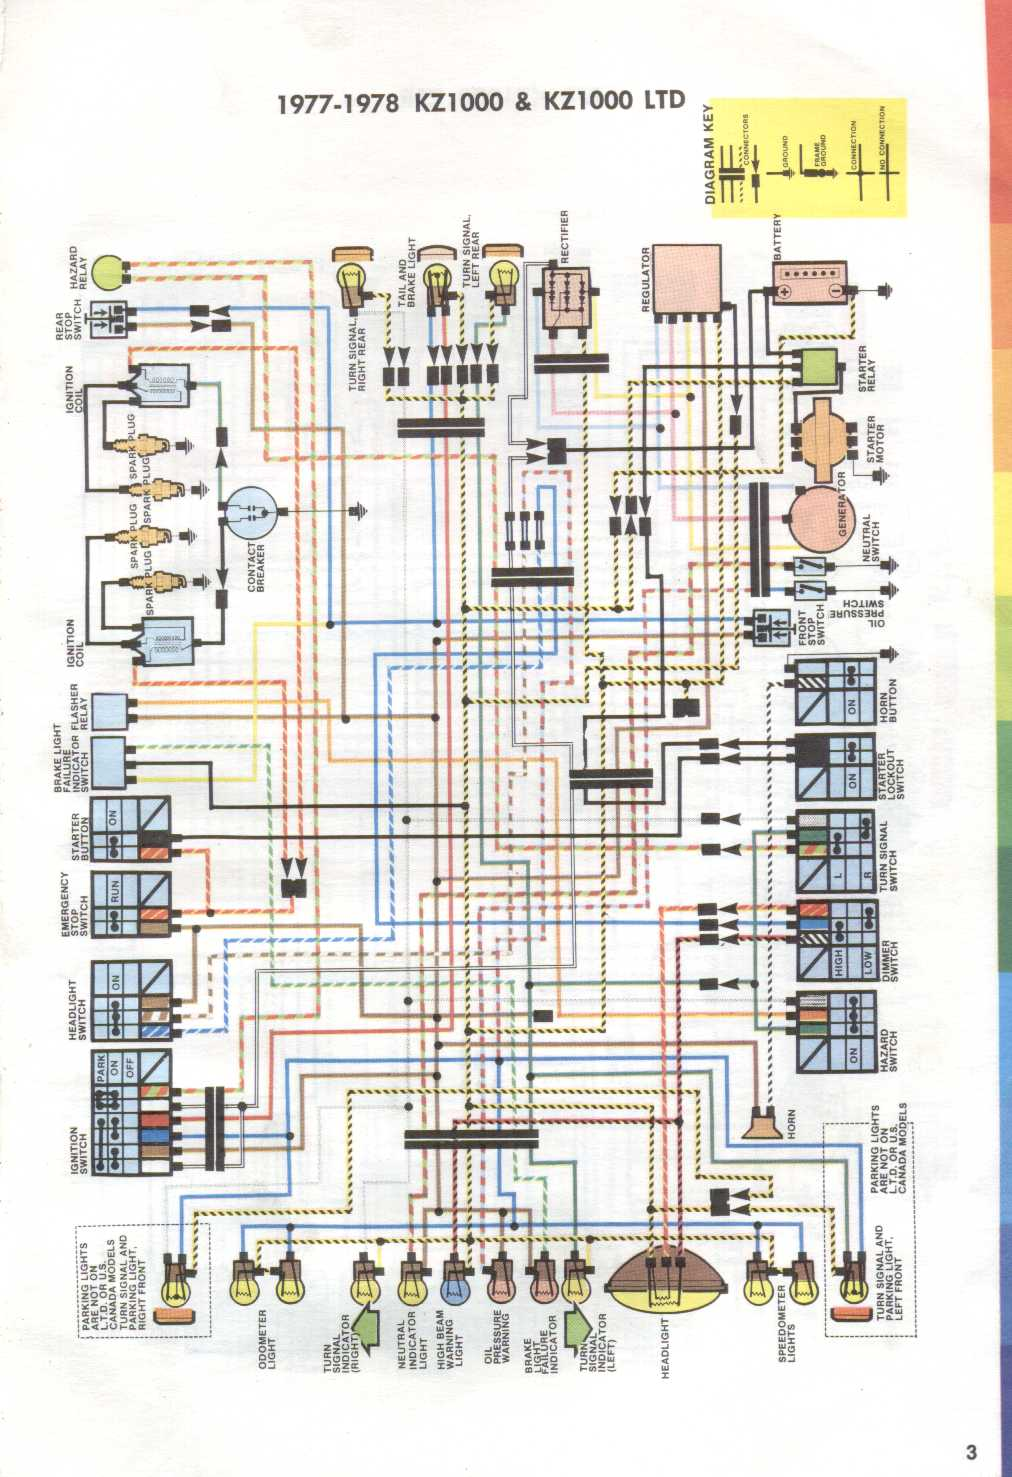 Wiring Diagram For 1977  U2013 1978 Kawasaki Kz1000 And Kz1000ltd  U2013 Evan Fell Motorcycle Works